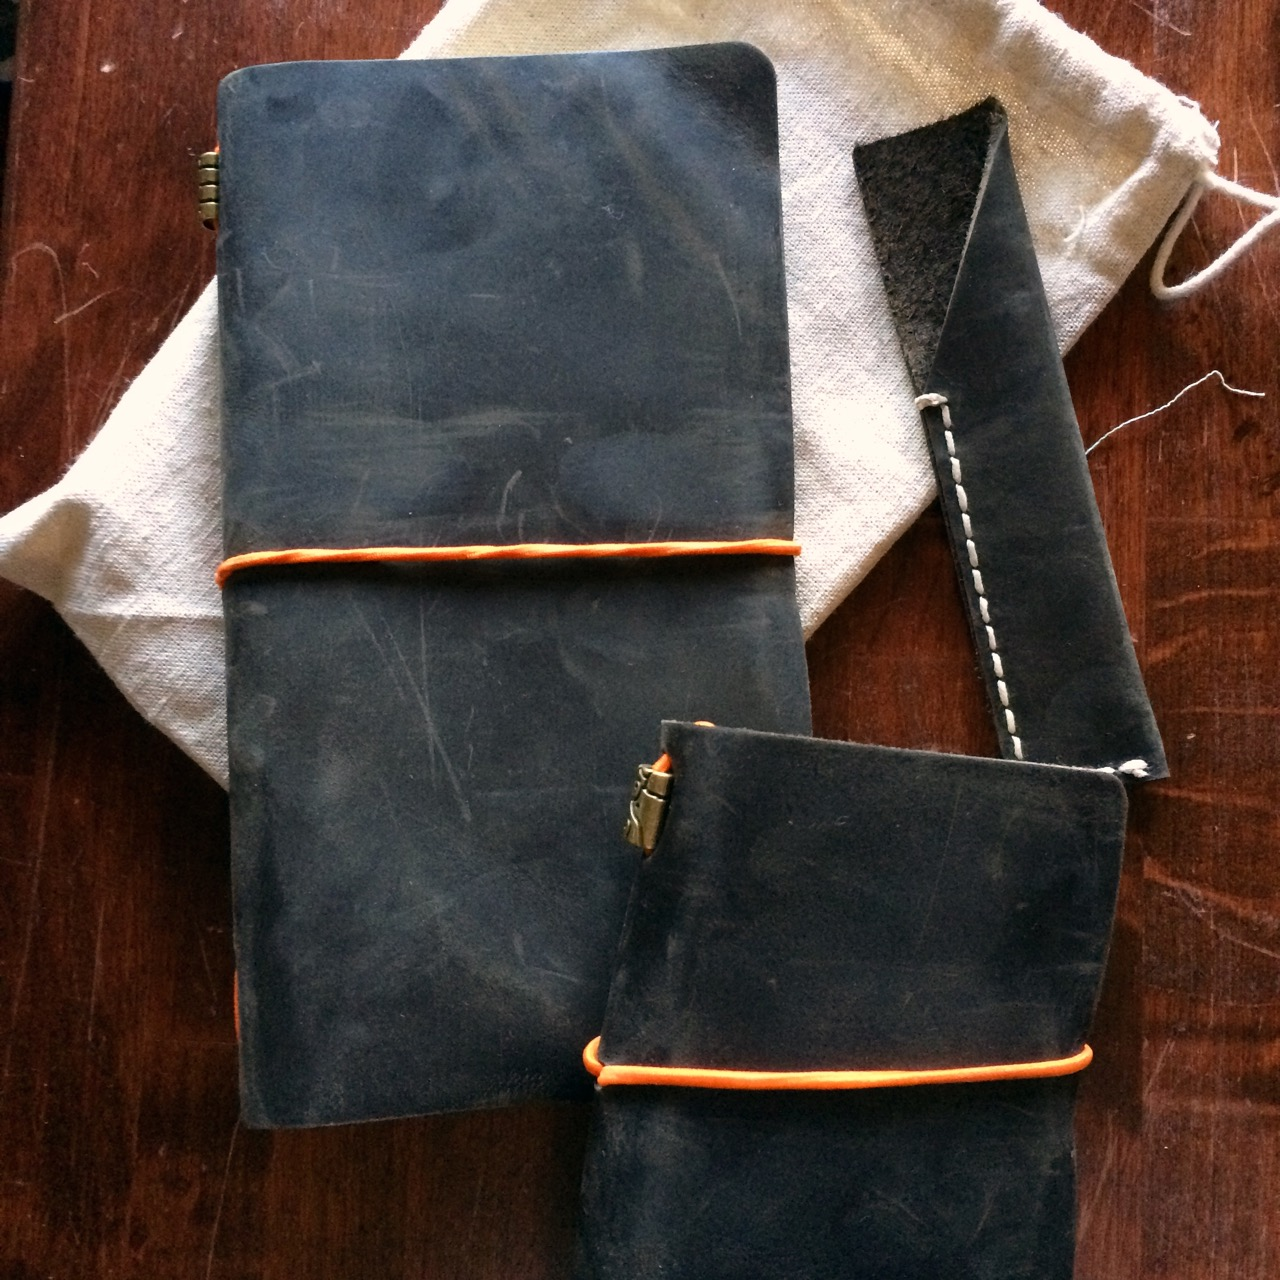 One Traveler's size journal, one Passport journal, one pen case.